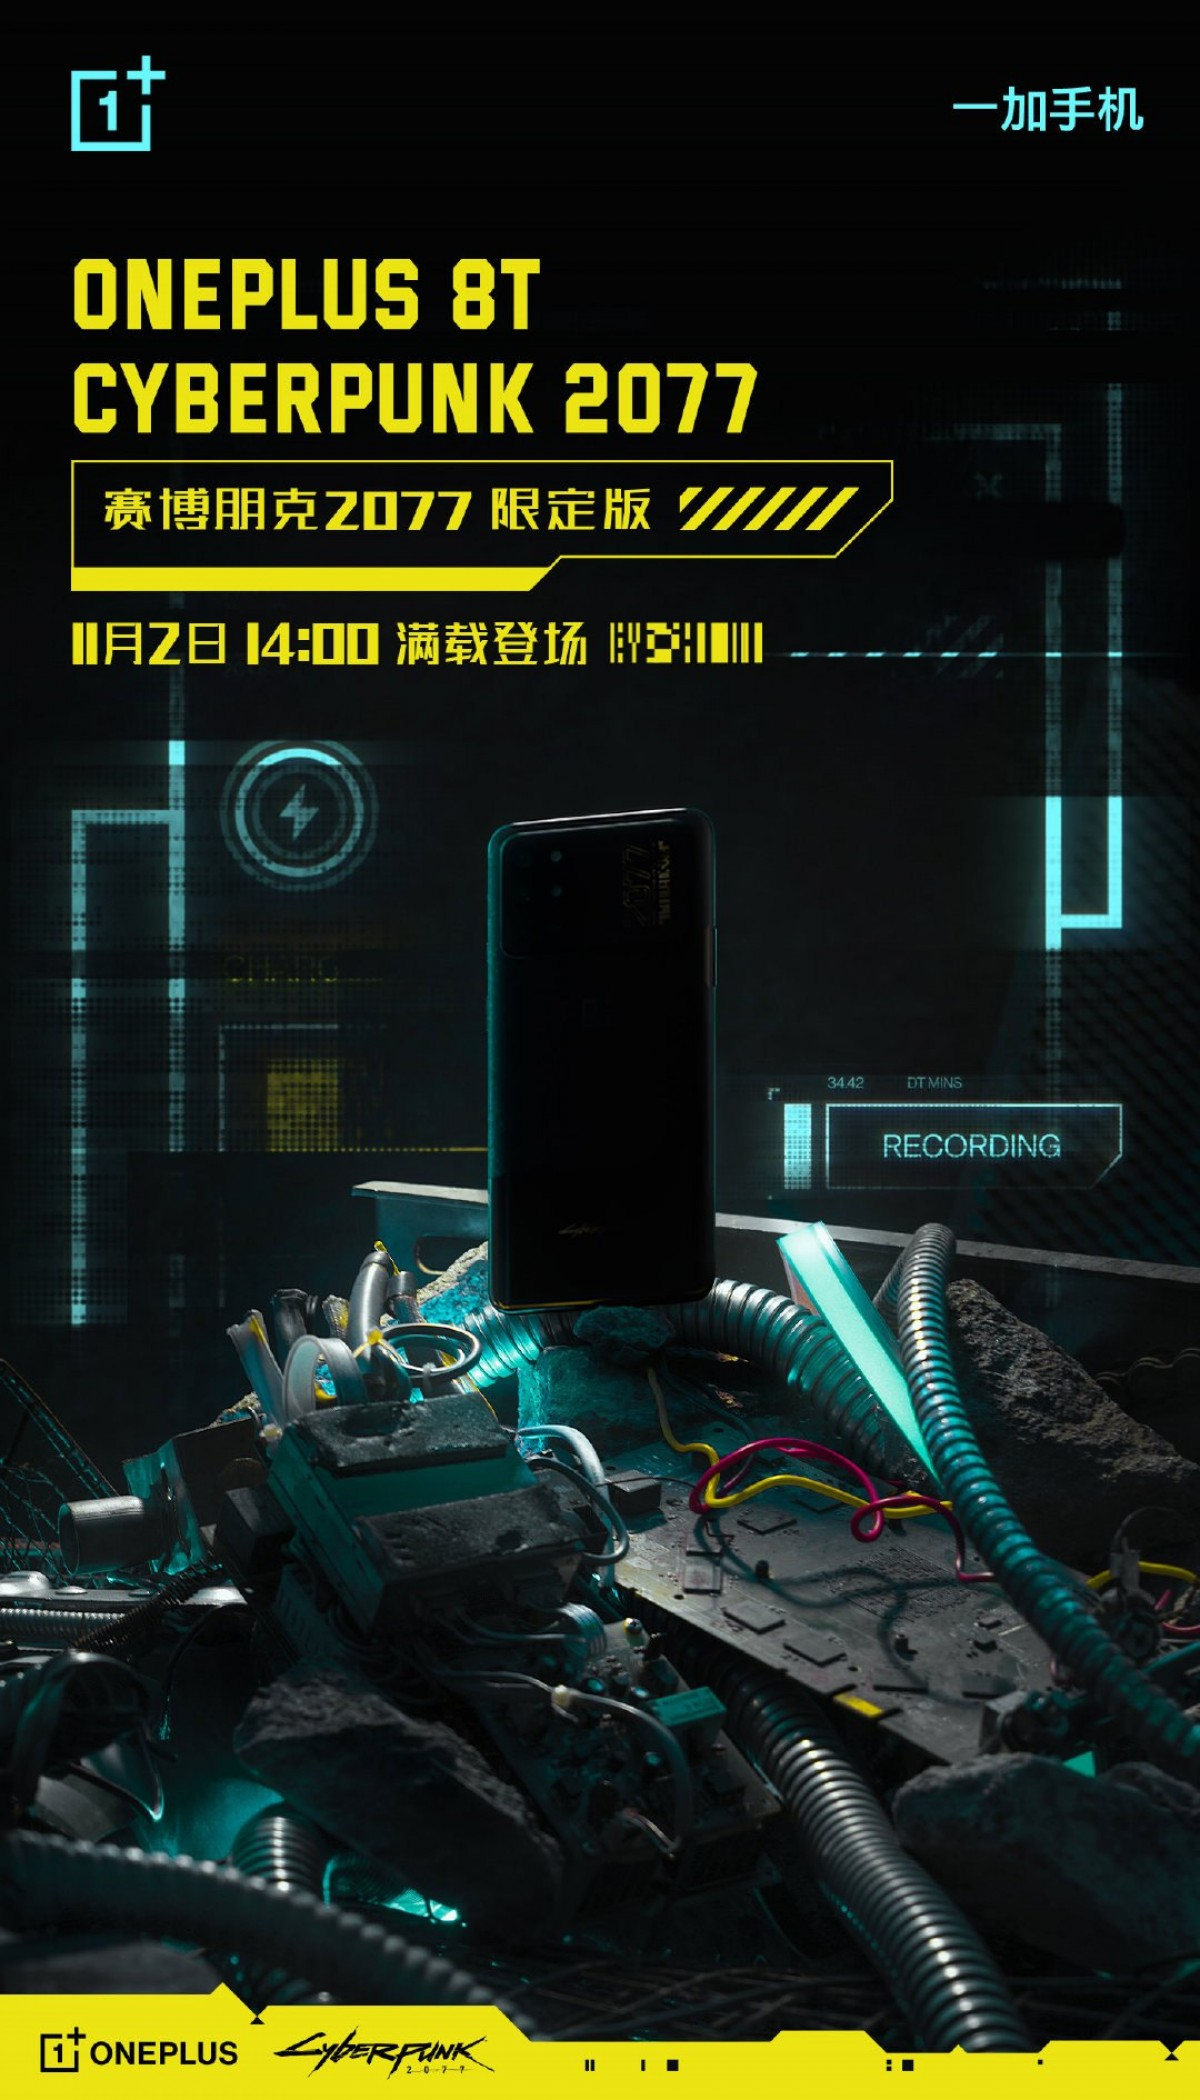 Oneplus 8t S Cyberpunk 2077 Edition Will Arrive On November 2 Gsmarena Com News